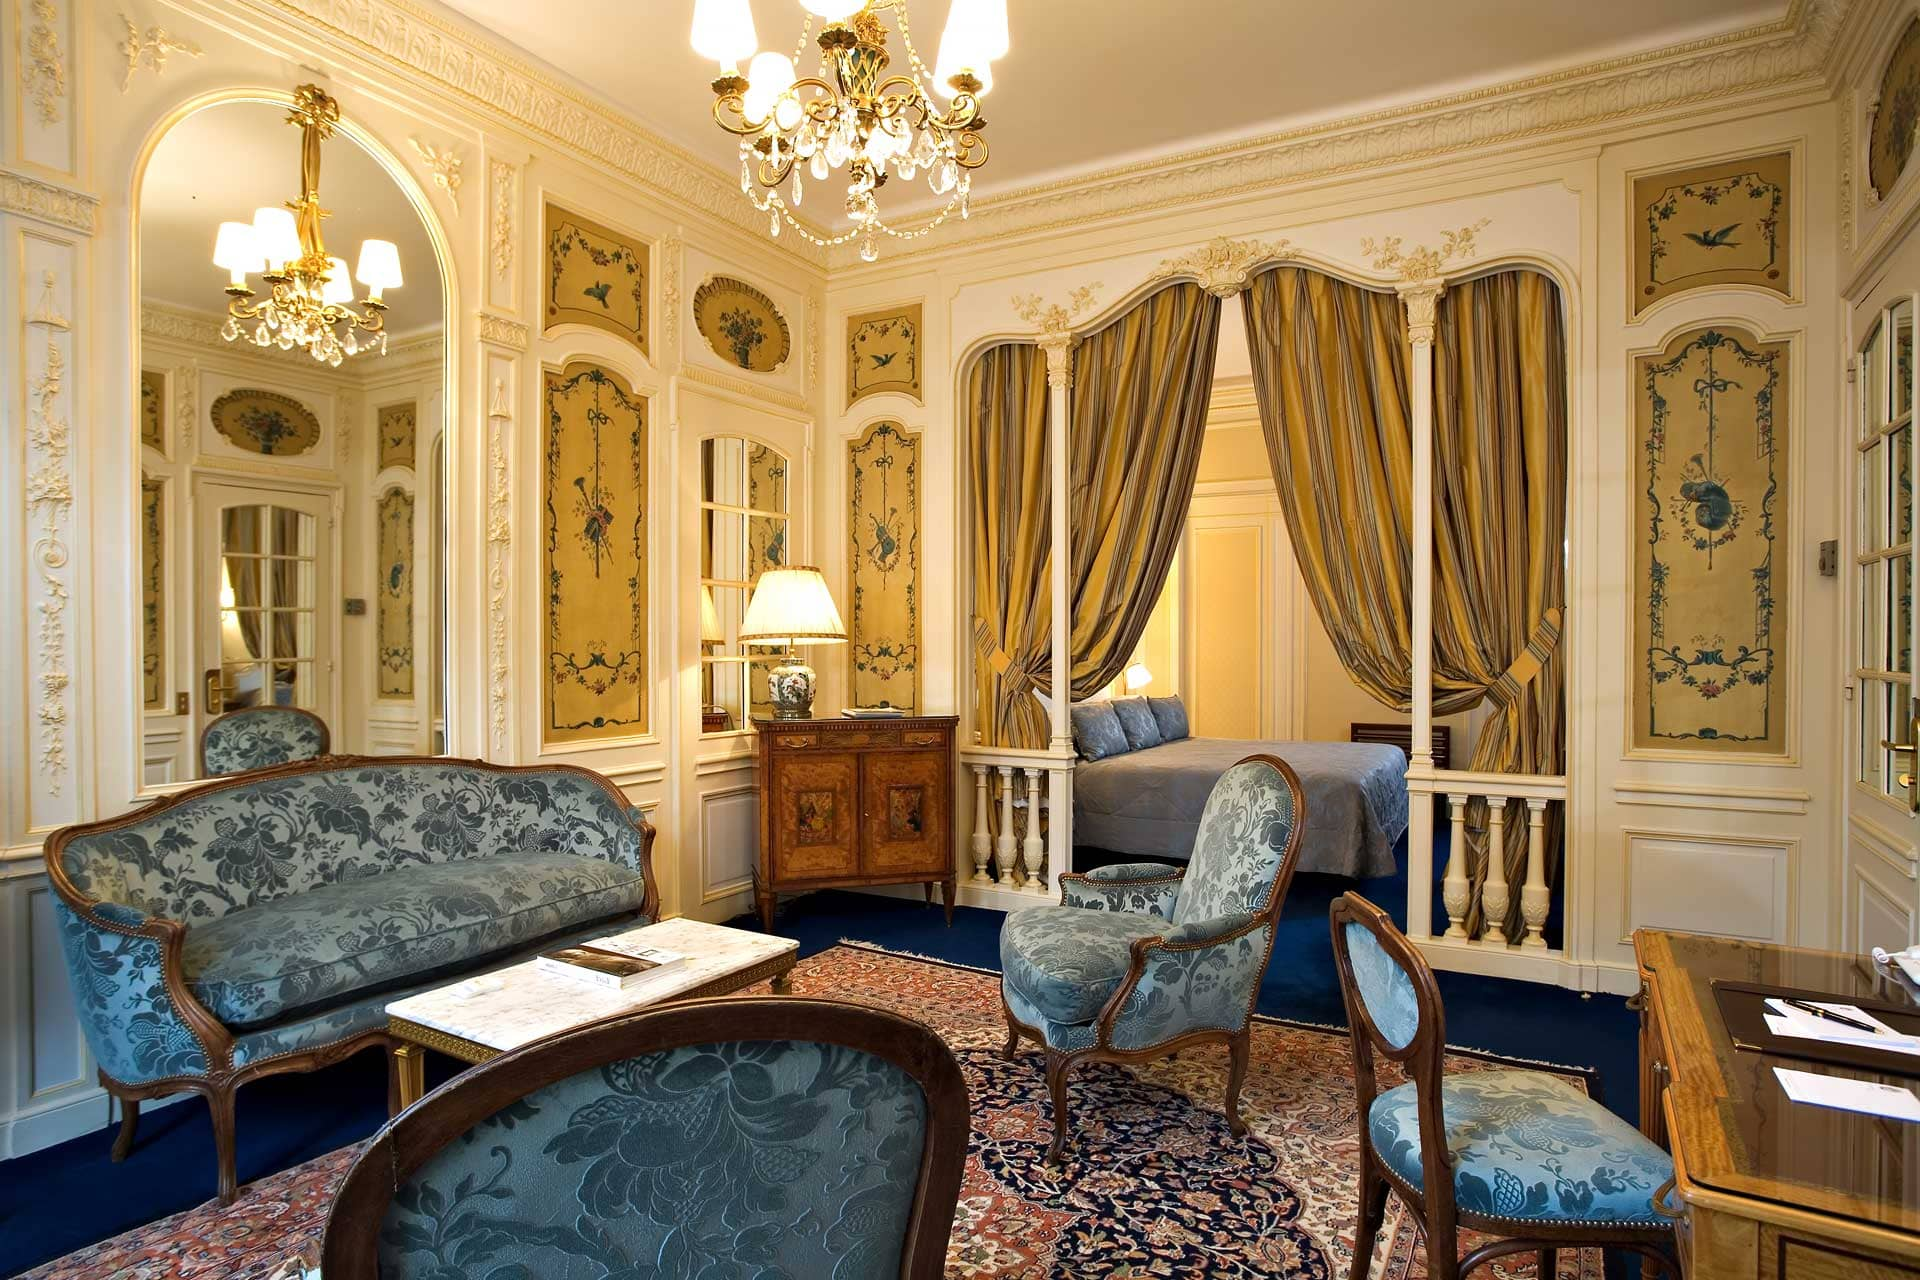 266/5-Suites/Junior suite/Suite Junior 3 - CHotel Raphael Paris.jpg